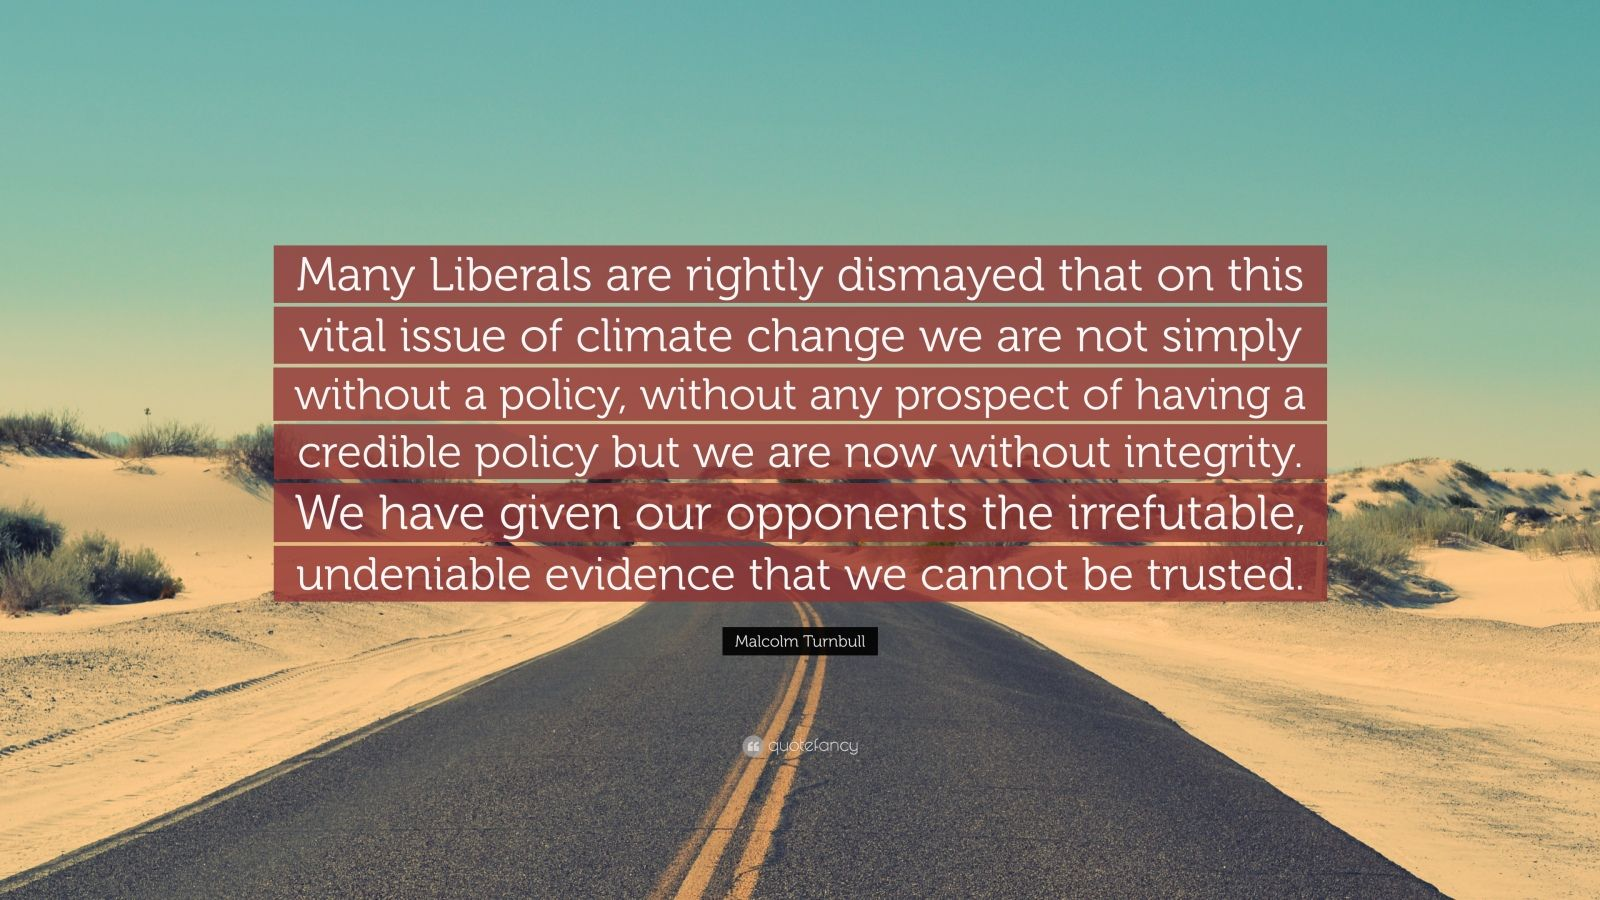 "Malcolm Turnbull Quote: ""Many Liberals are rightly dismayed that on this vital issue of climate change we are not simply without a policy, without any prospect of having a credible policy but we are now without integrity. We have given our opponents the irrefutable, undeniable evidence that we cannot be trusted."""